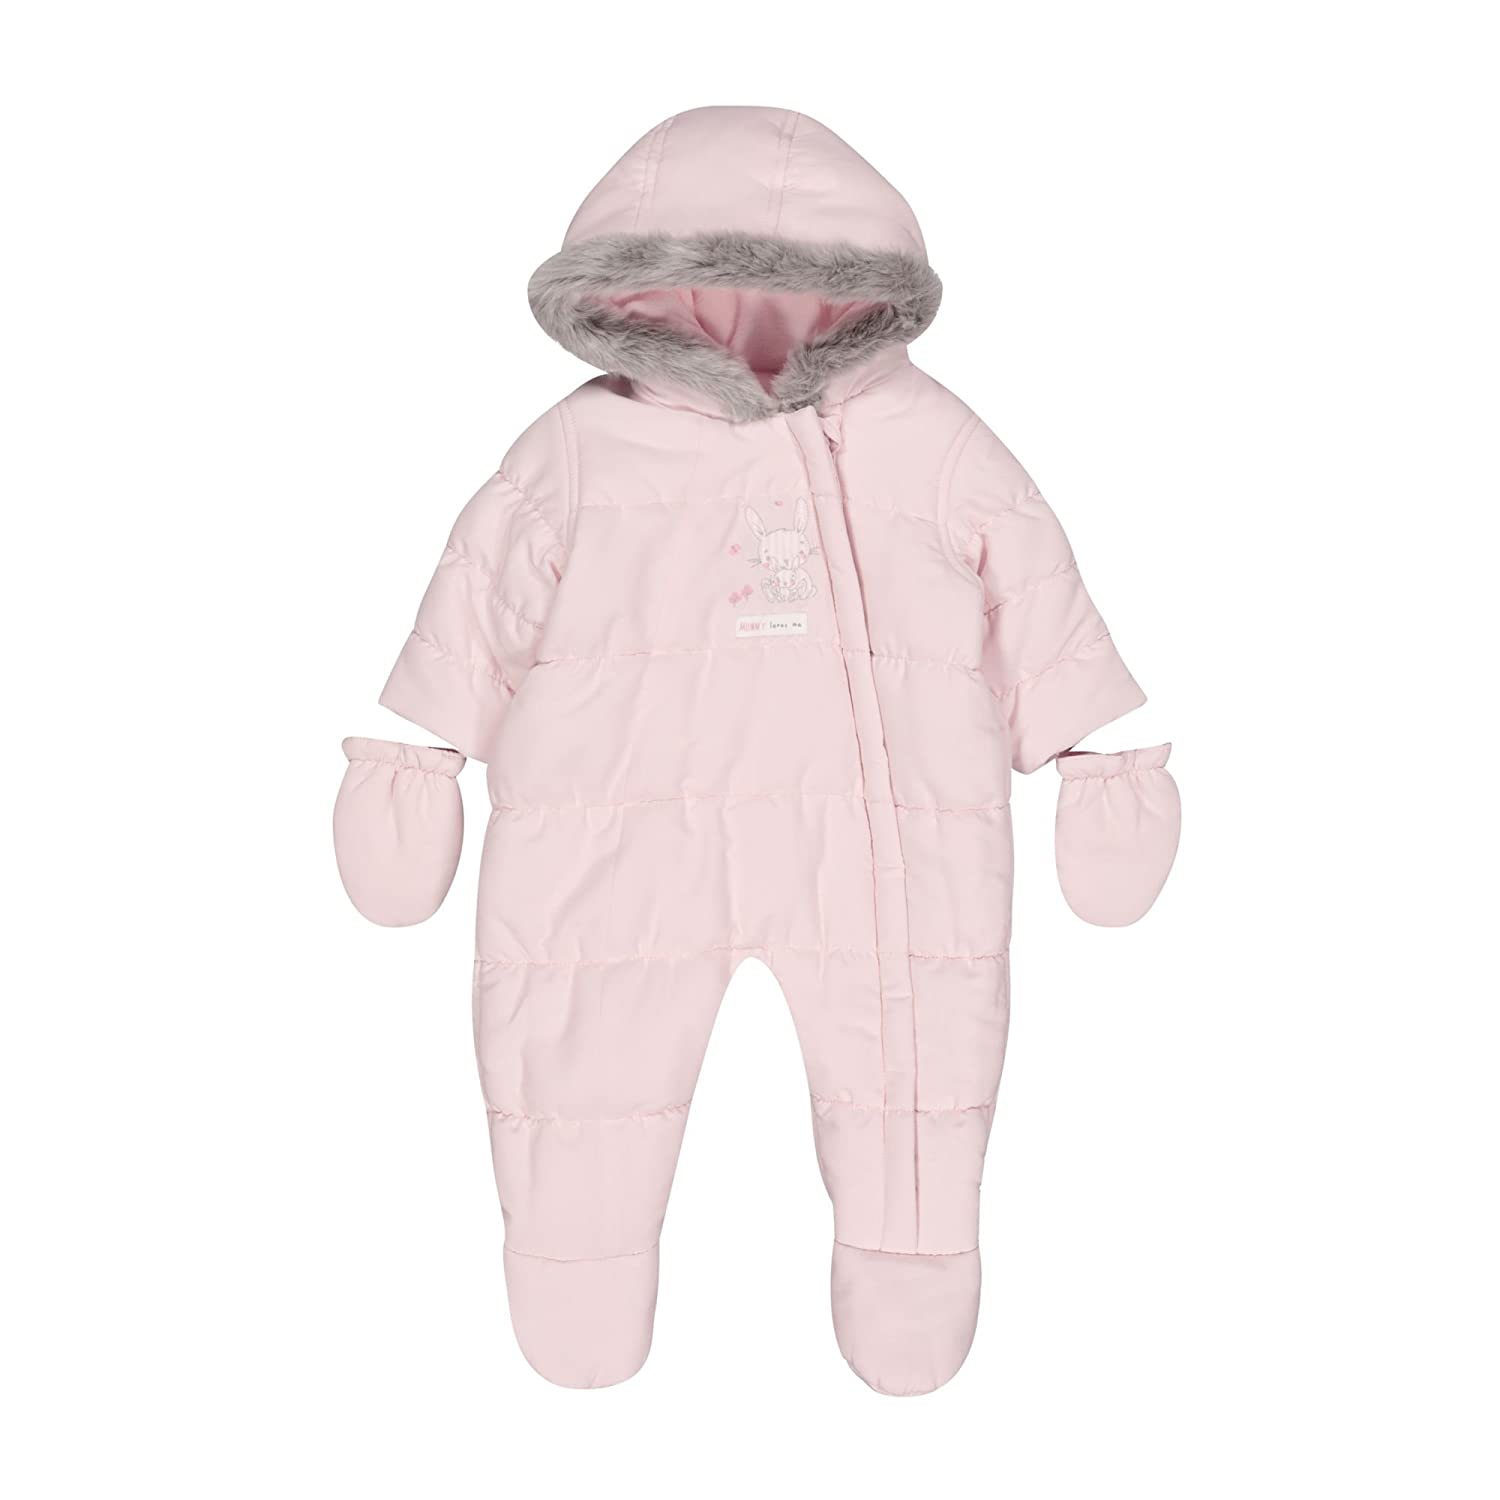 Mothercare Baby Girls' Graphic Snowsuit Fleece QD718